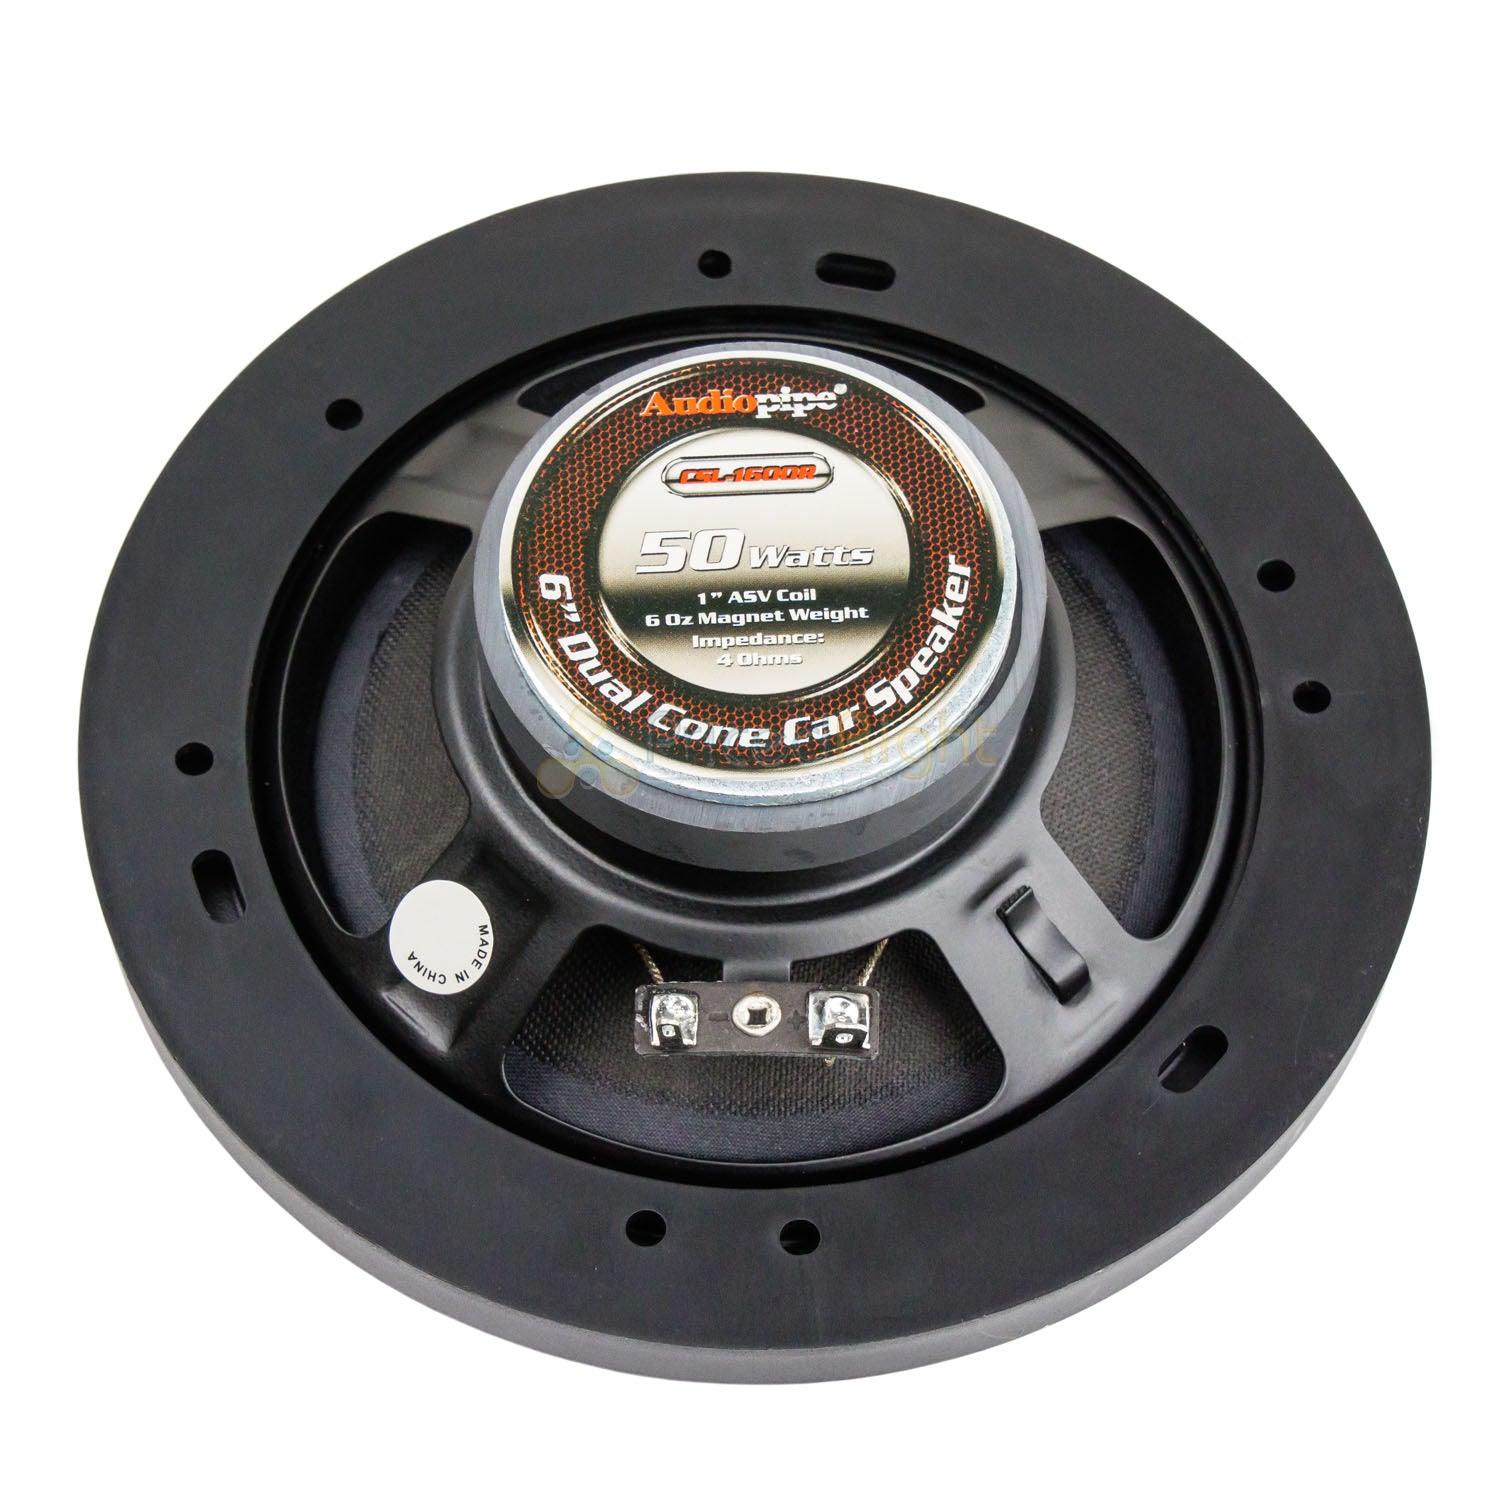 "Audiopipe 6"" Dual Cone Speakers Pair Slim 50W 4 Ohm 1"" Voice Coil CSL-1600R"